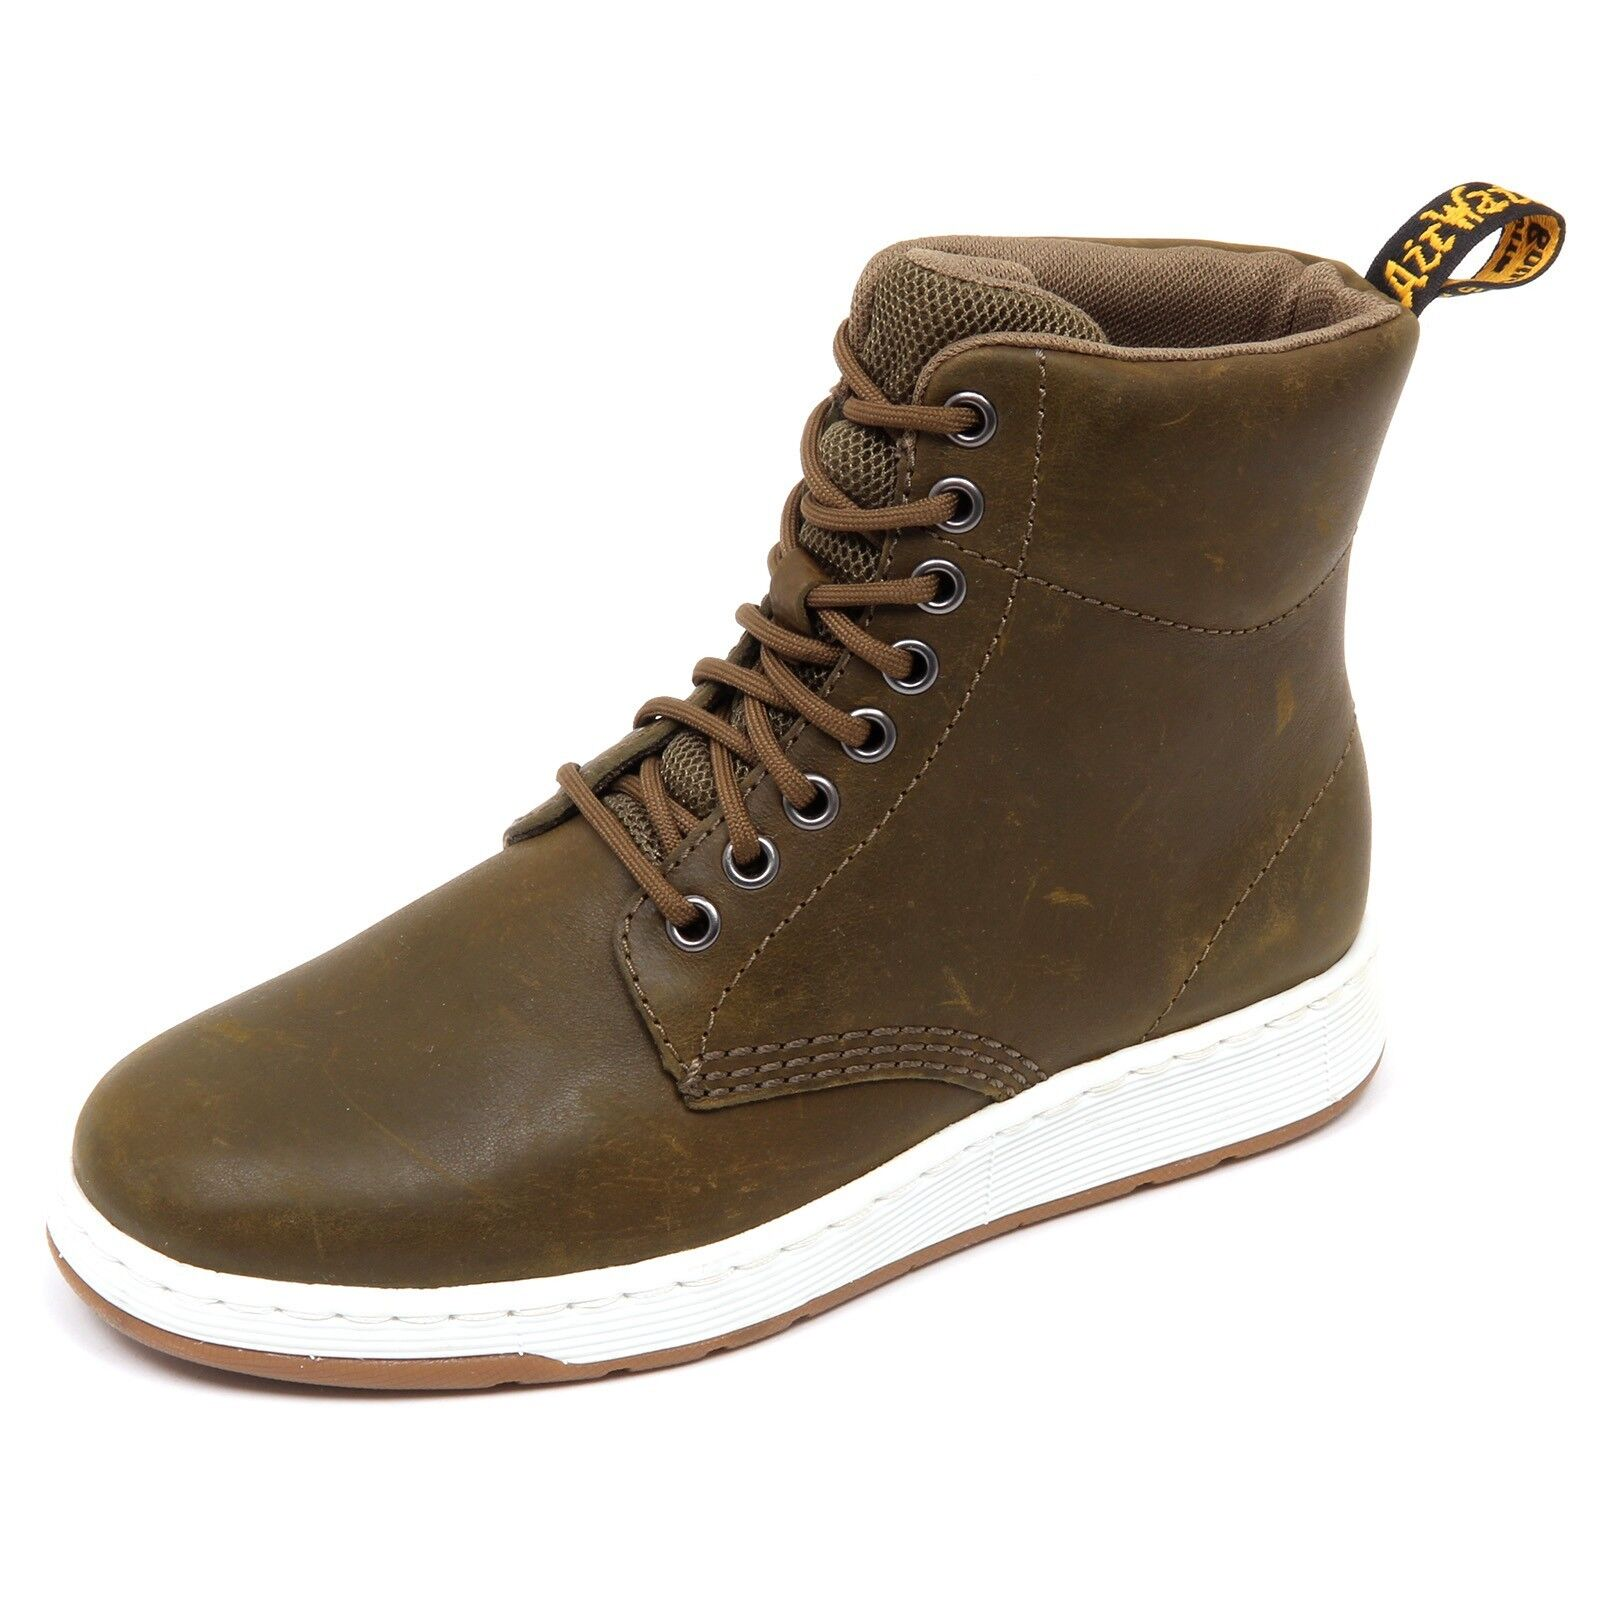 D4314 (without box) sneaker donna DR. MARTENS woman RIGAL green vintage shoe woman MARTENS f45266